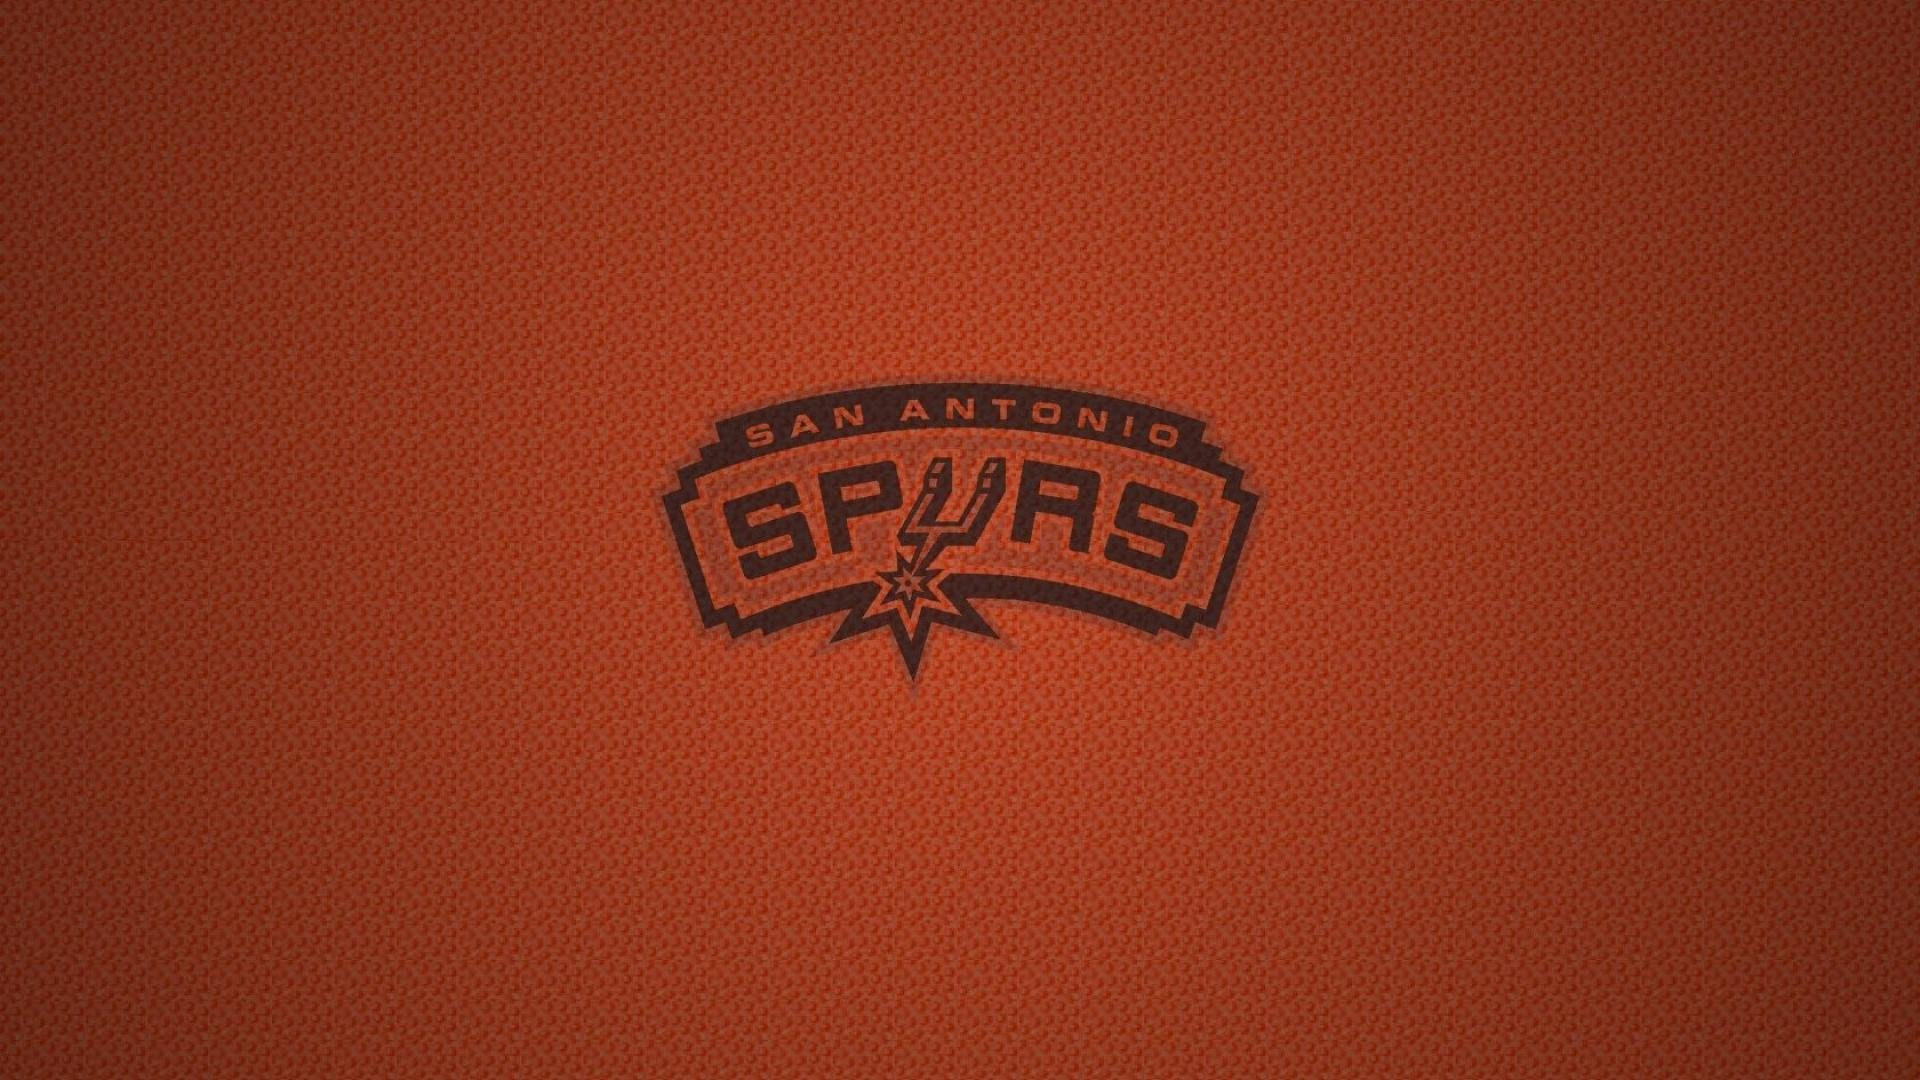 San Antonio Spurs Wallpapers Wallpaperboat